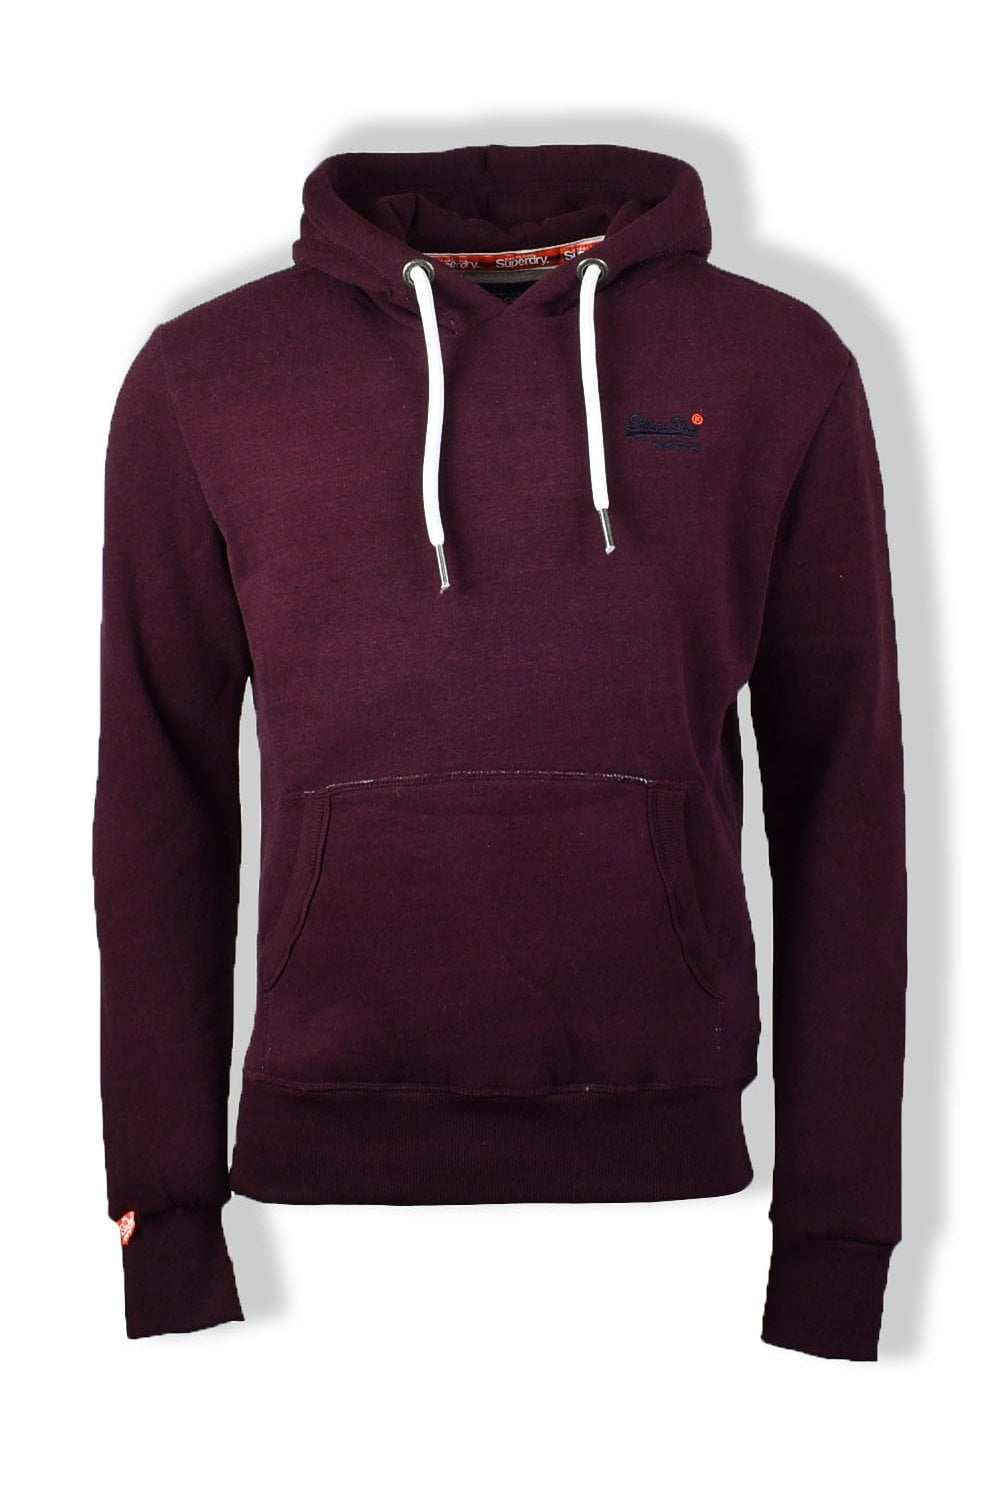 new style 2f2f7 4a076 Superdry Orange Label Pullover Hoody (Boston Burgundy Grit)